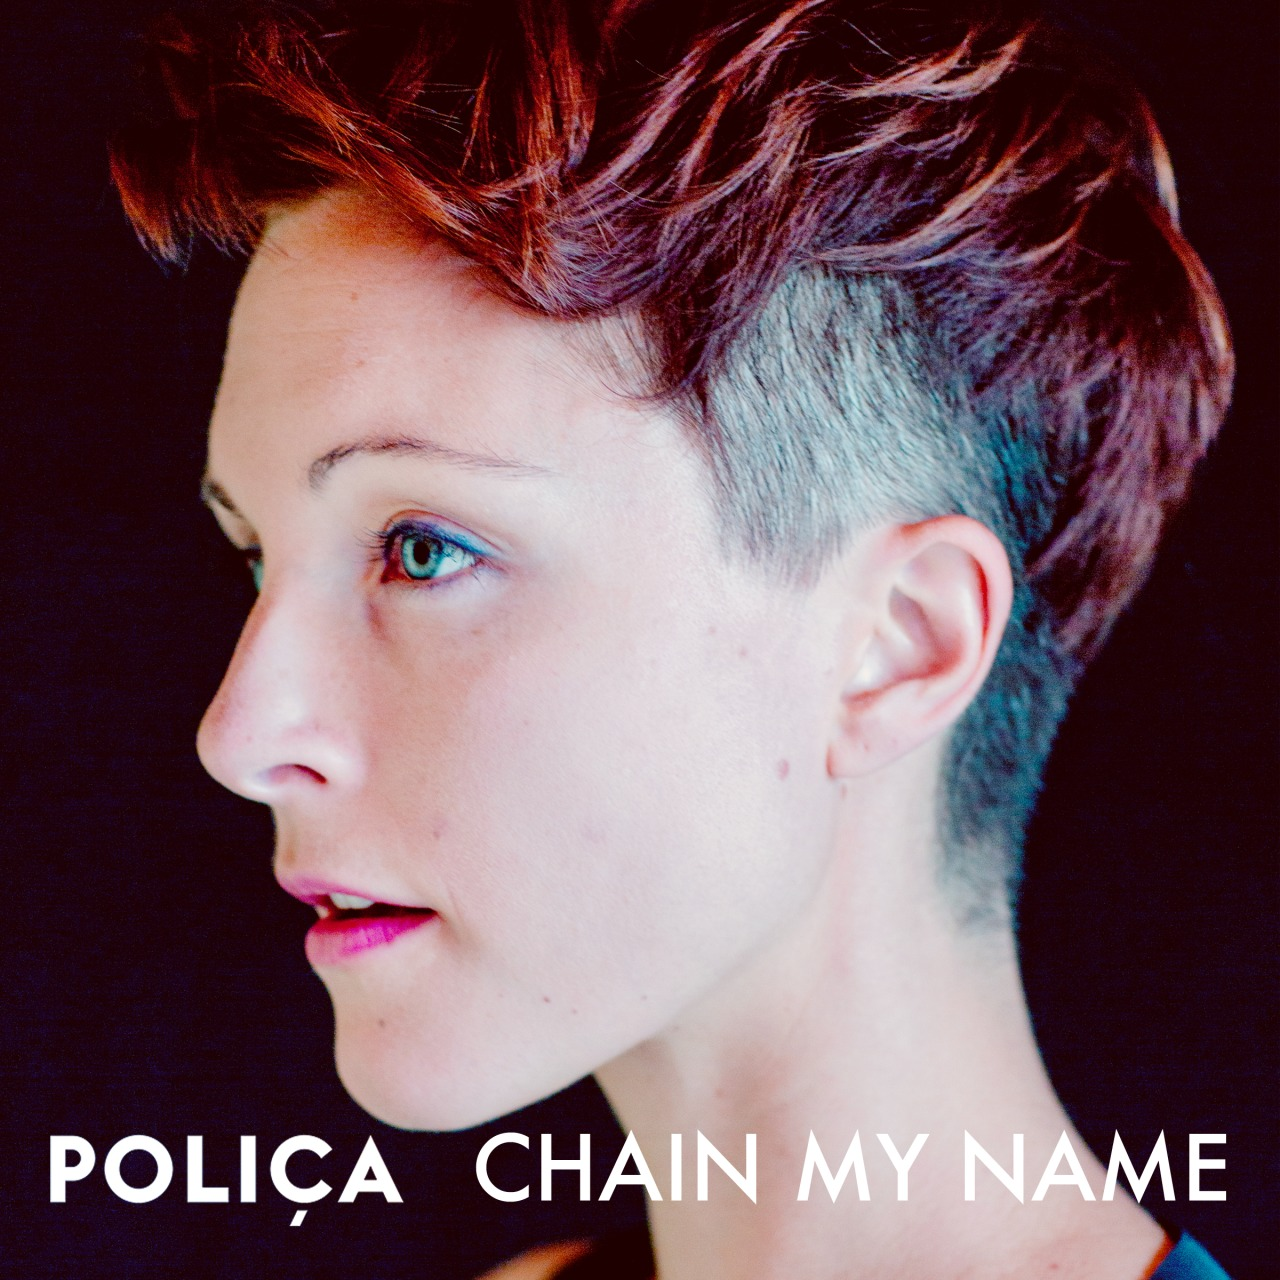 momandpopmusic: Stream Polica's brand new single 'Chain My Name' — IT'S A FULL BLOWN POP JAM, YOU GUYS. https://soundcloud.com/polica/chain-my-name